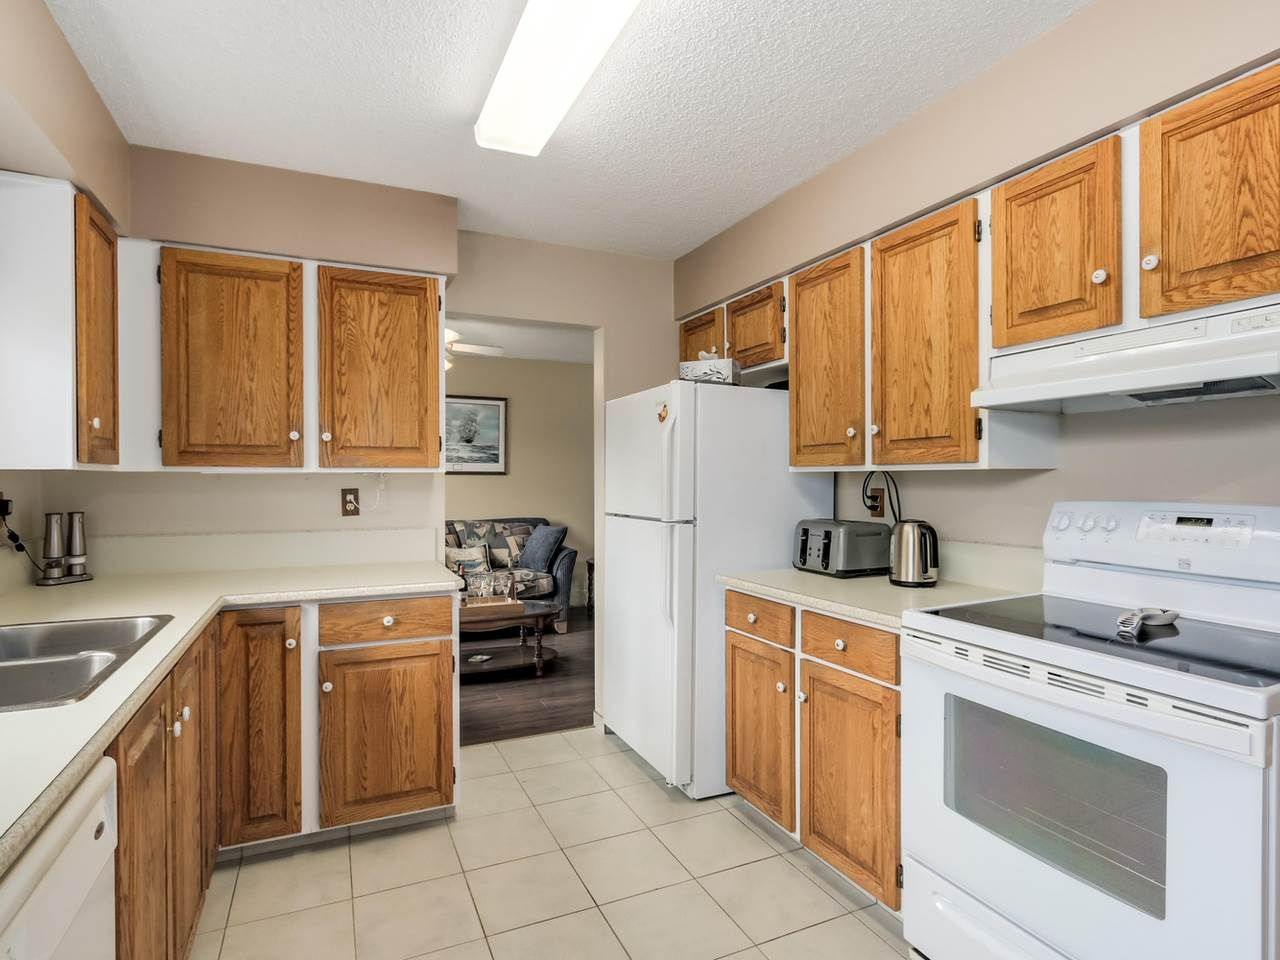 Photo 3: Photos: 4032 AYLING Street in Port Coquitlam: Oxford Heights House for sale : MLS®# R2074528